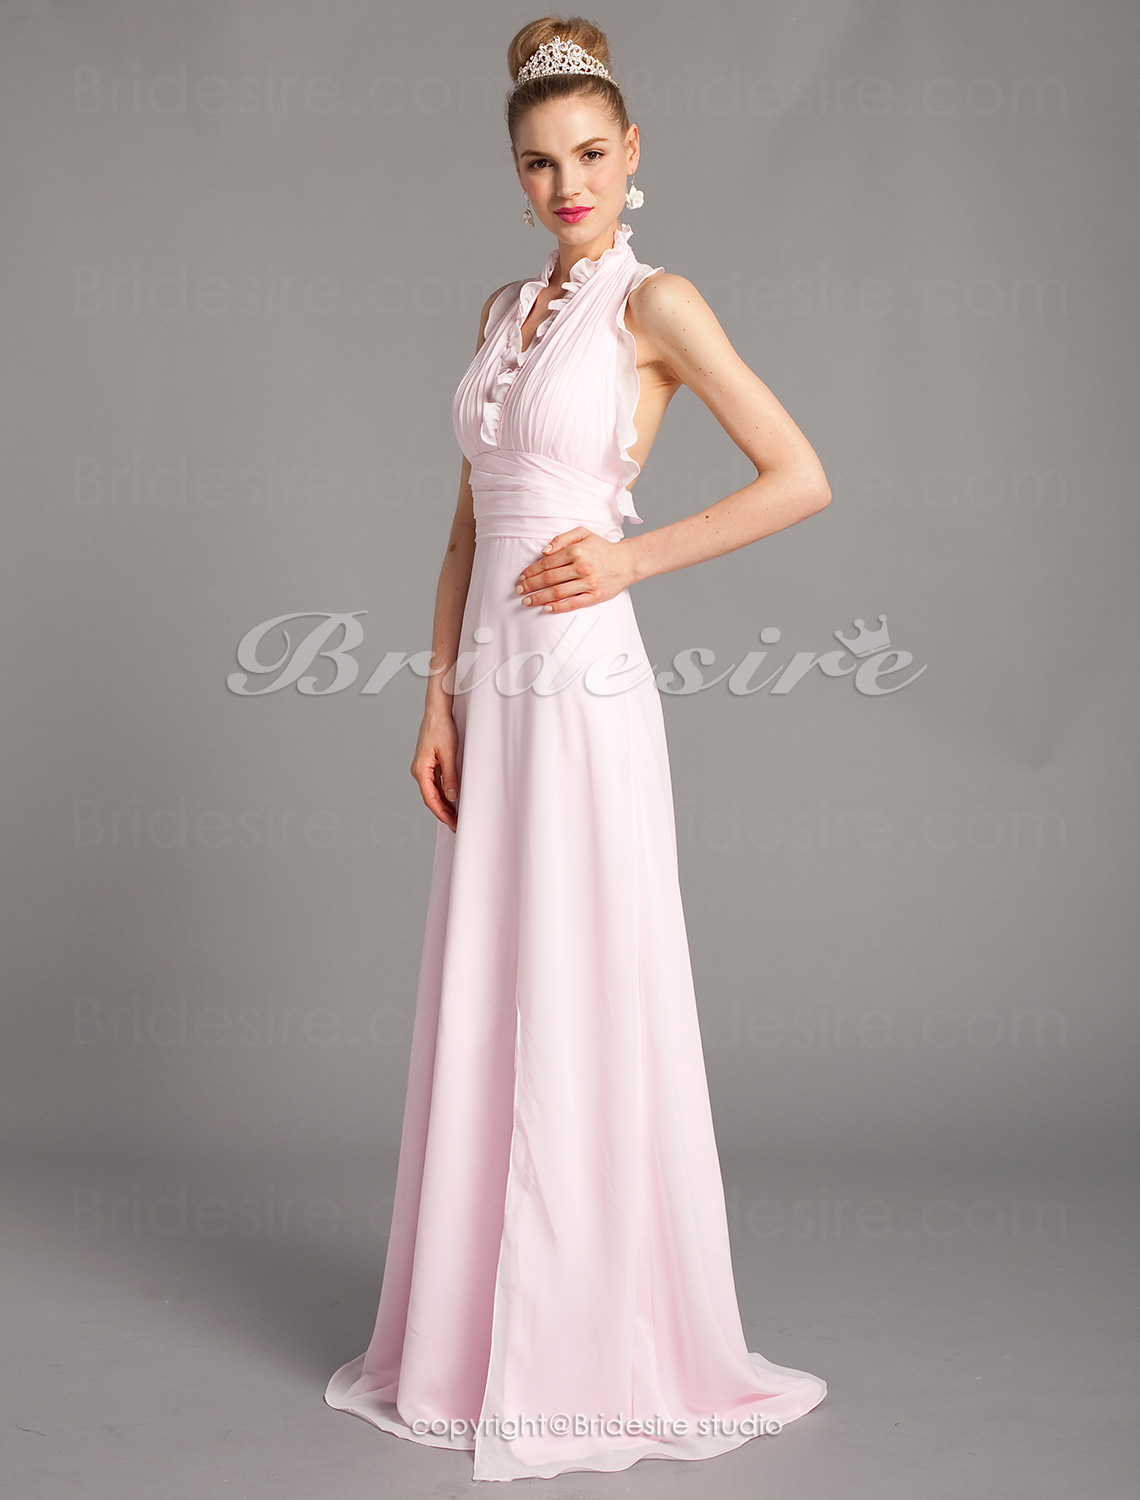 Sheath/ Column Chiffon Sweep/ Brush Train Halter Evening Dress